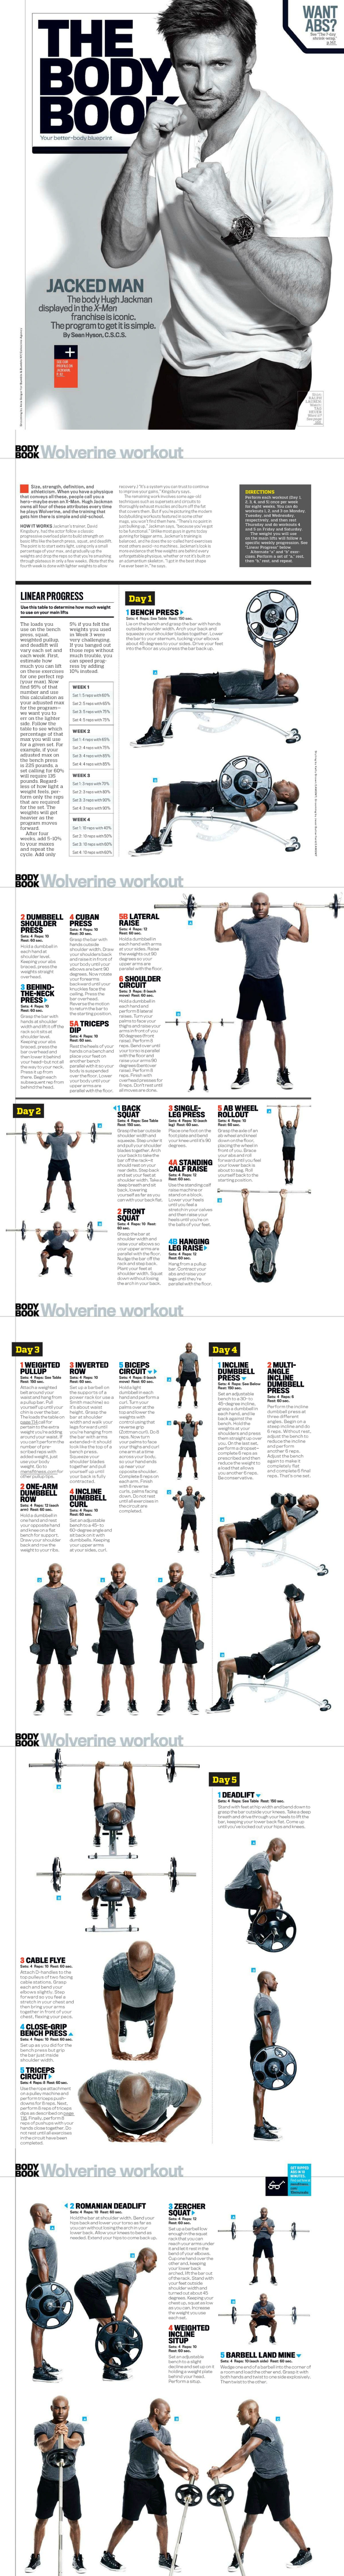 The Wolverine Workout See More Gt Gt Pinterest